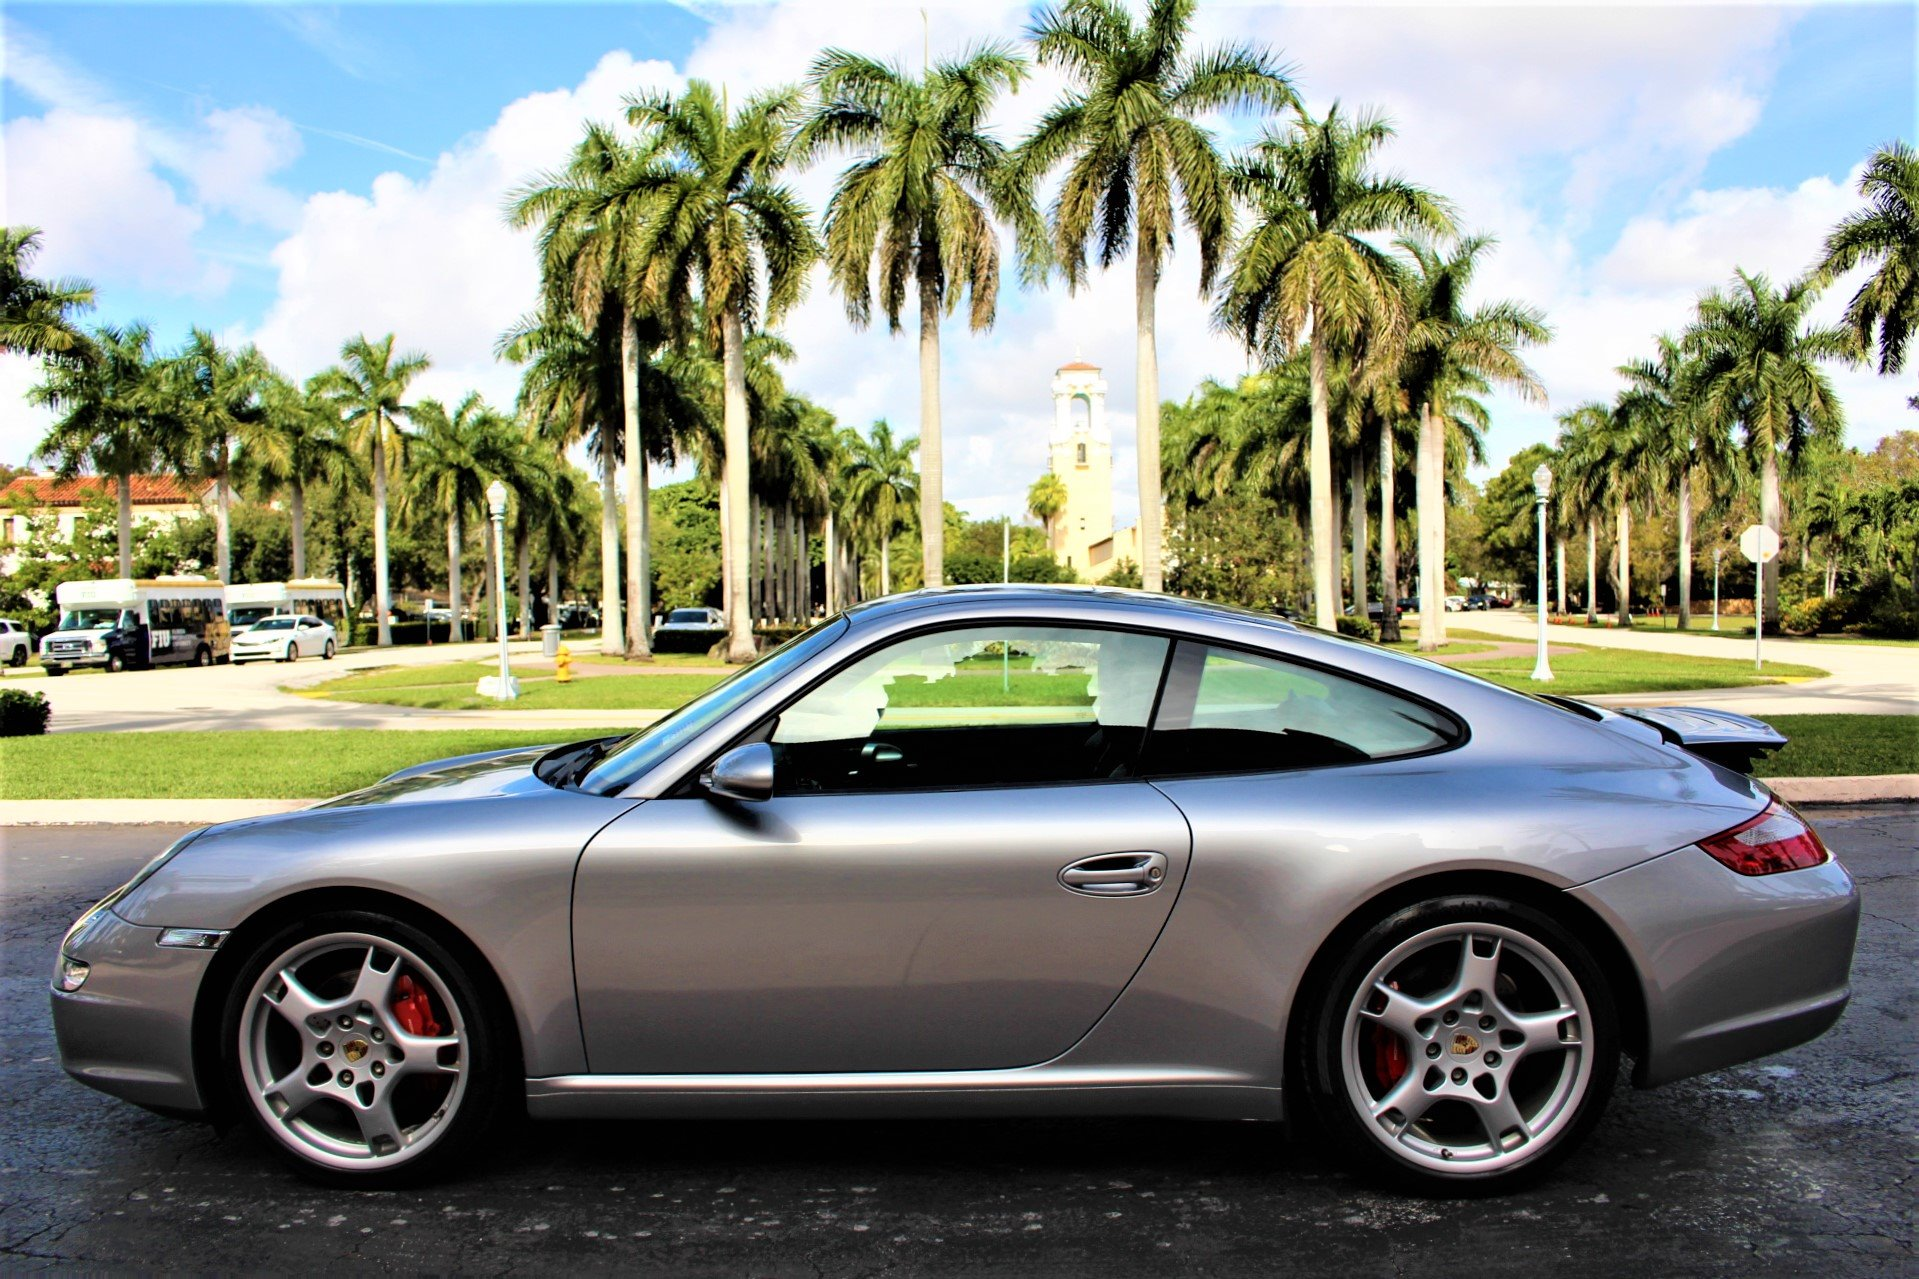 Used 2005 Porsche 911 Carrera S for sale Sold at The Gables Sports Cars in Miami FL 33146 2